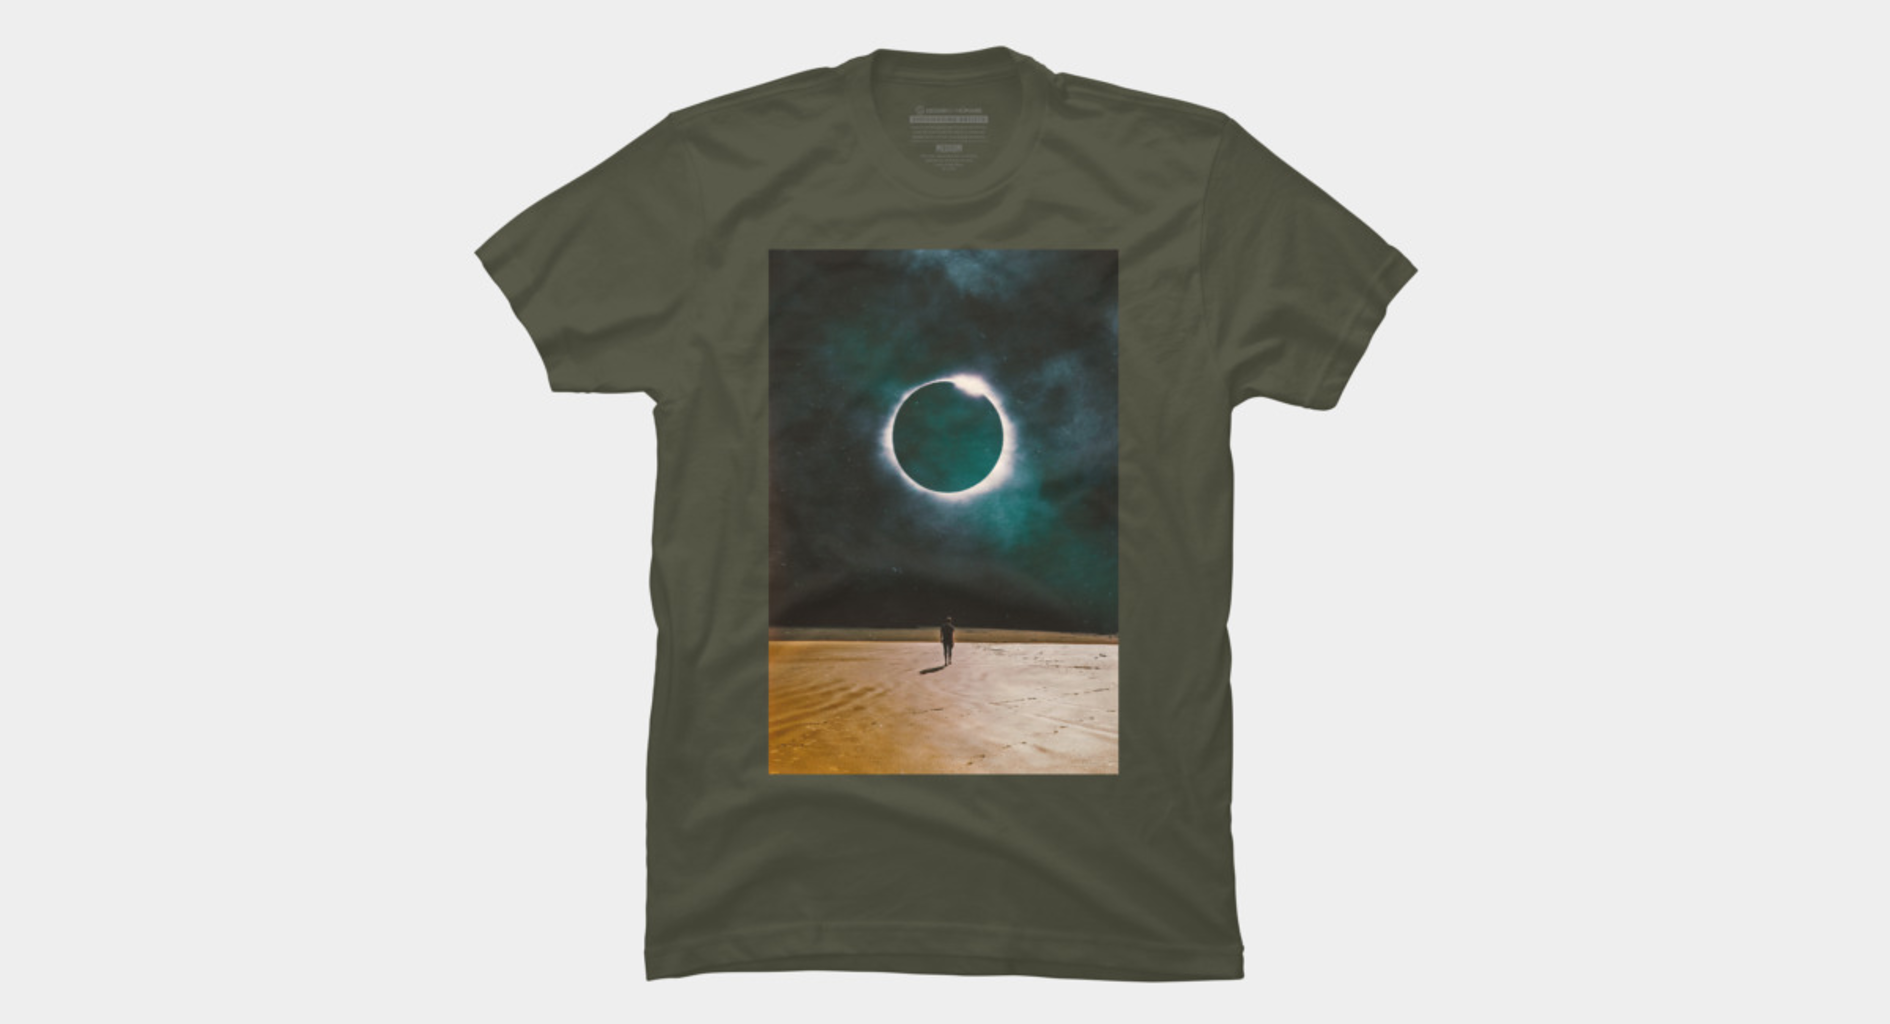 Design by Humans: Returning To The Eclipse